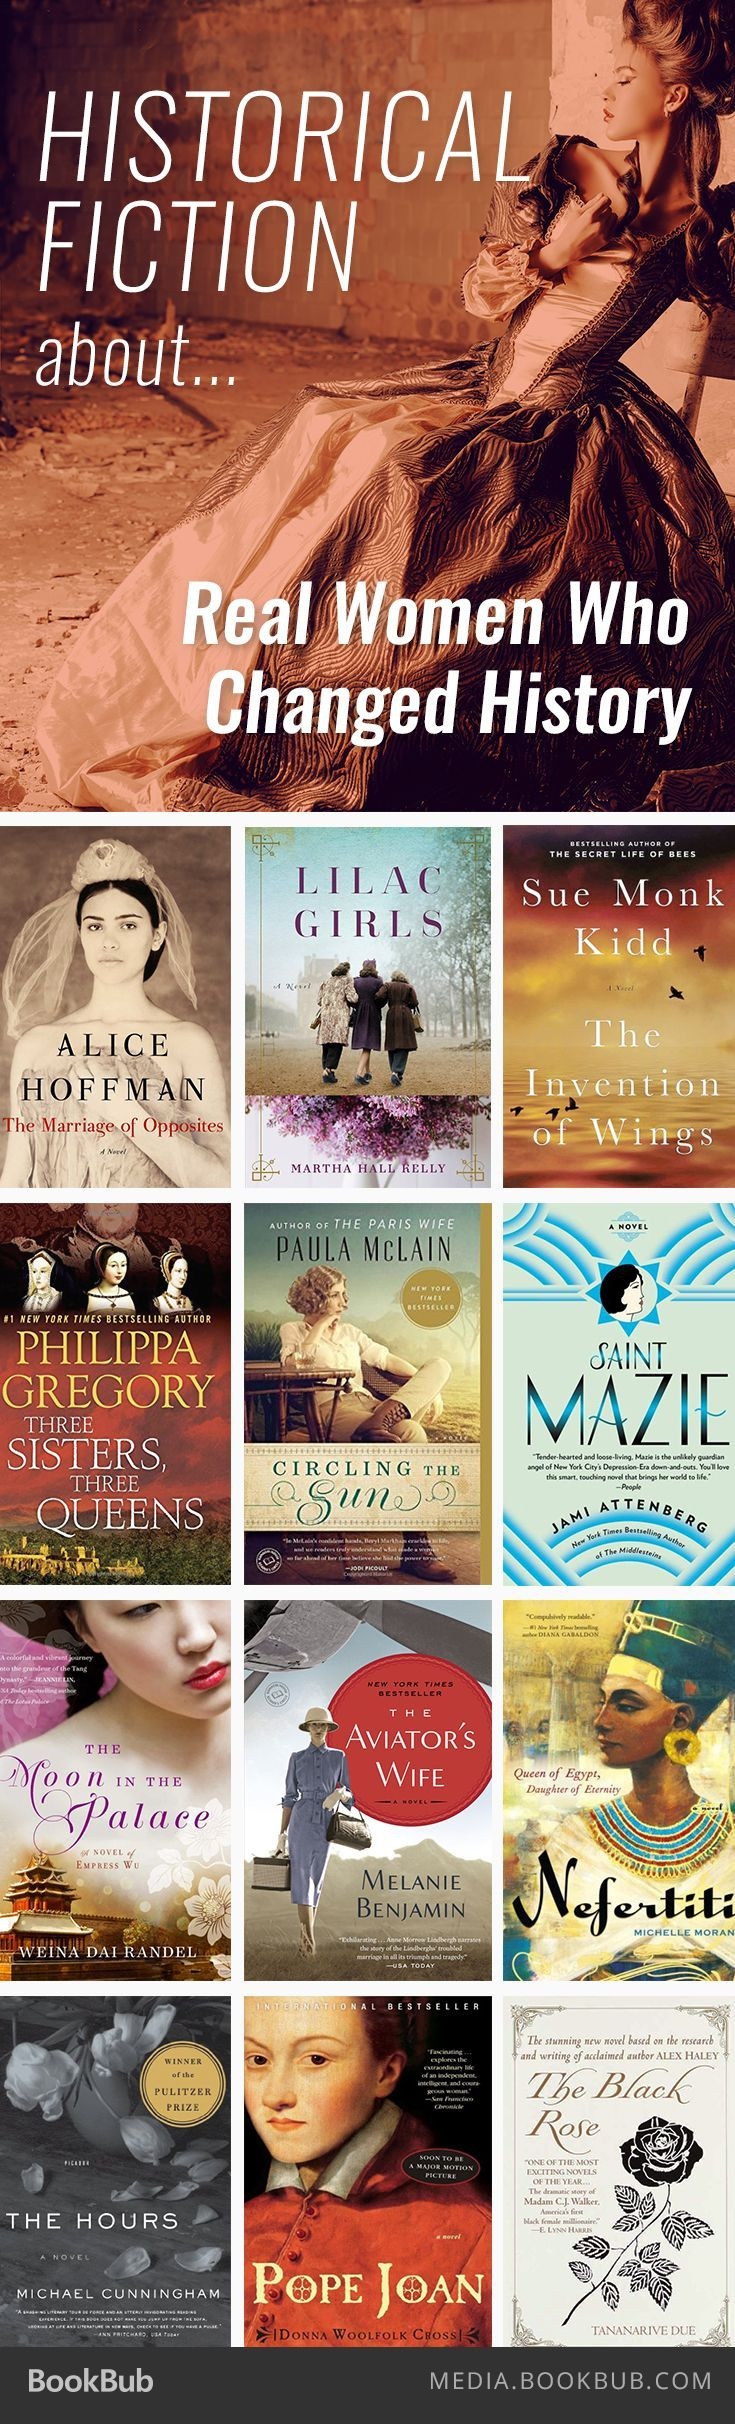 Historical fiction books about women who changed history.